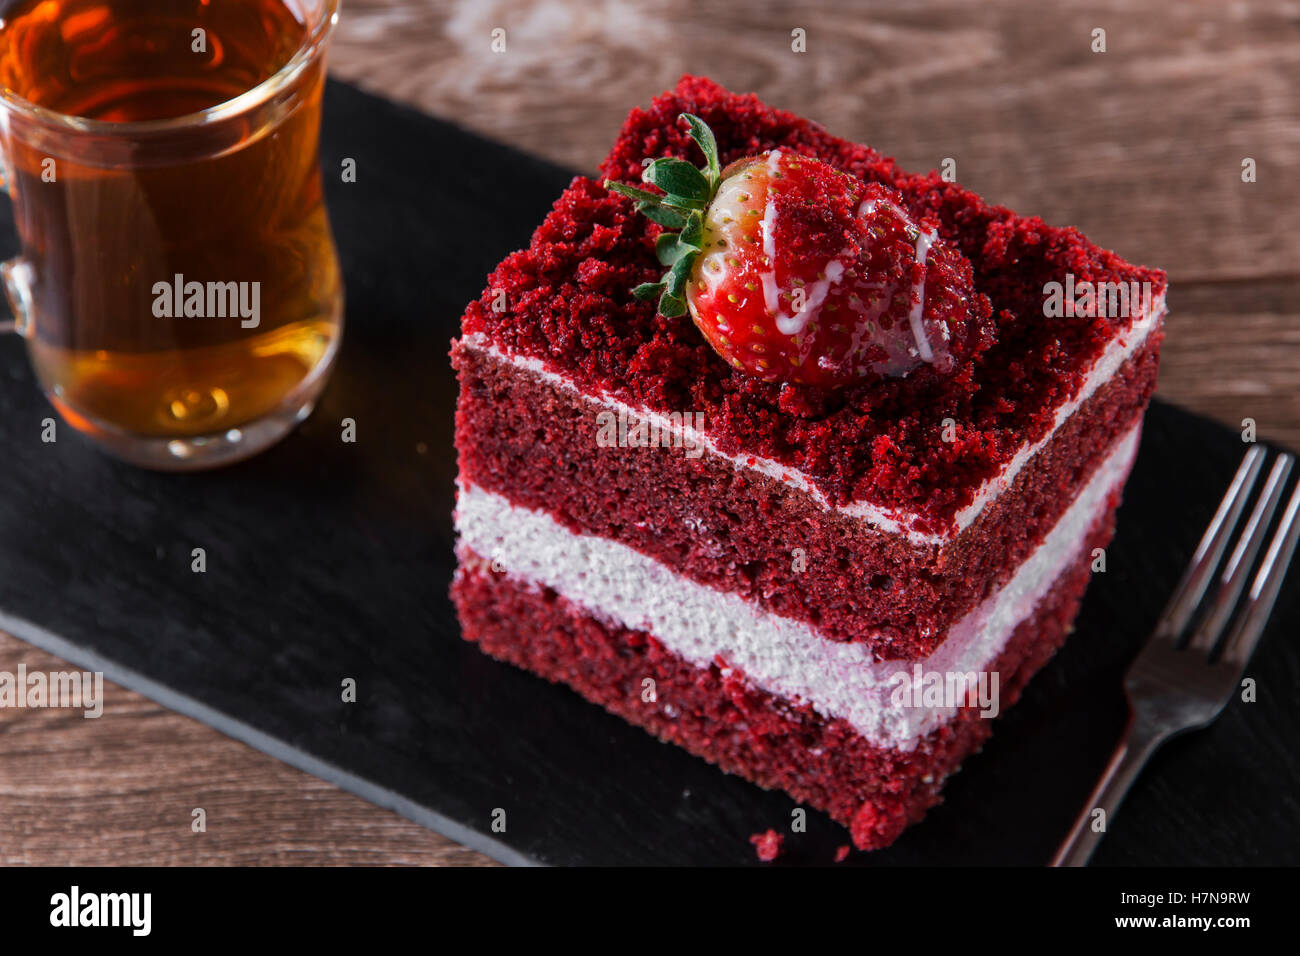 slice of red velvet cake with white frosting is garnished with strawberries close up - Stock Image